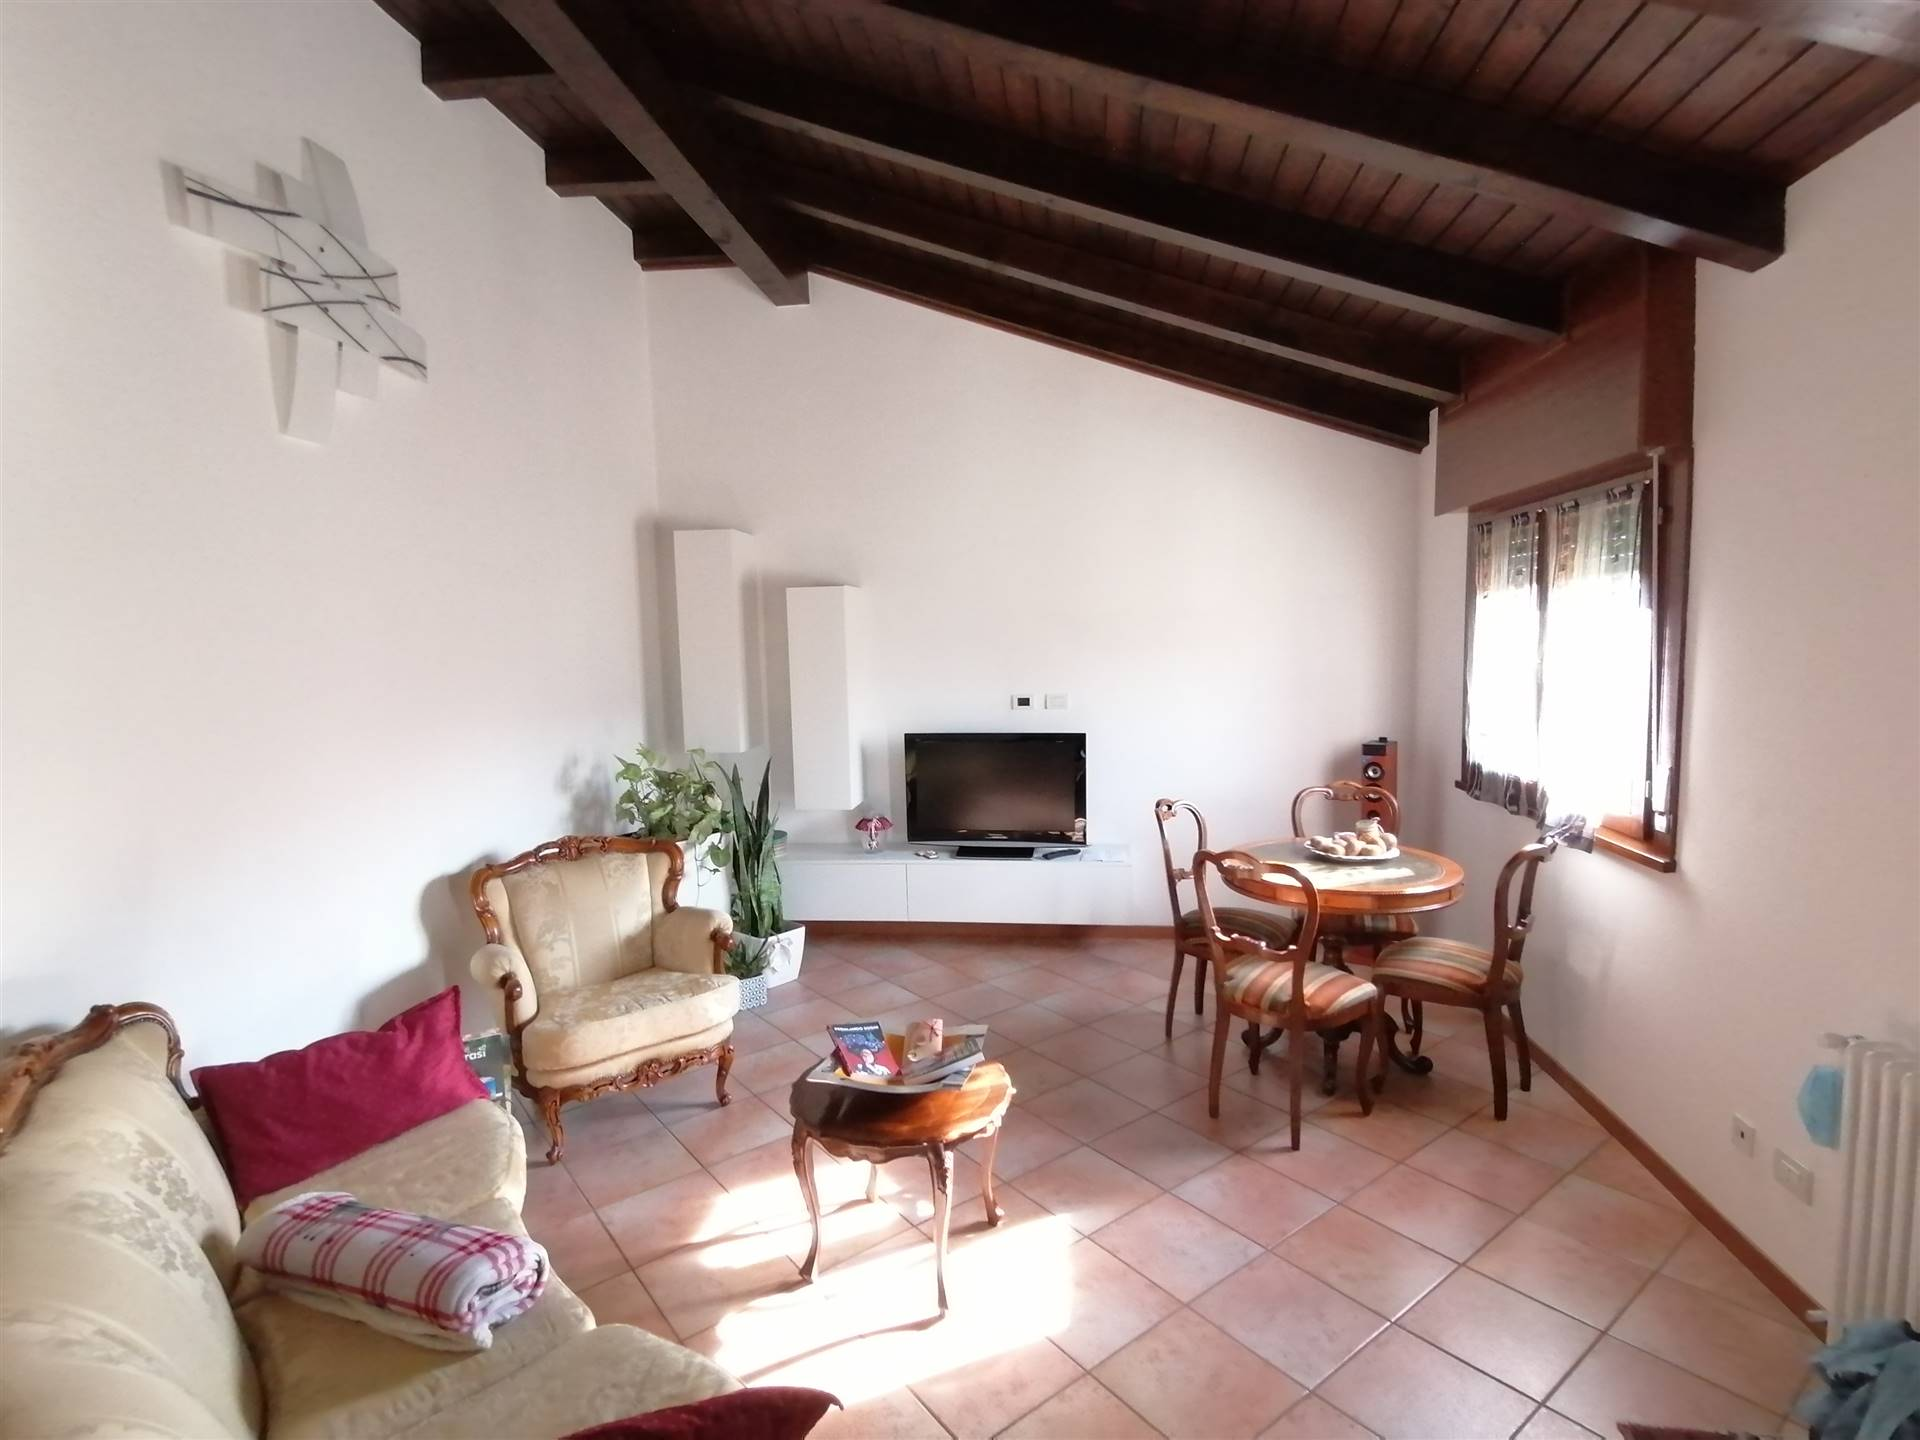 SALZANO, Independent Apartment for sale of 80 Sq. mt., Habitable, Heating Individual heating system, Energetic class: D, Epi: 101,69 kwh/m2 year,